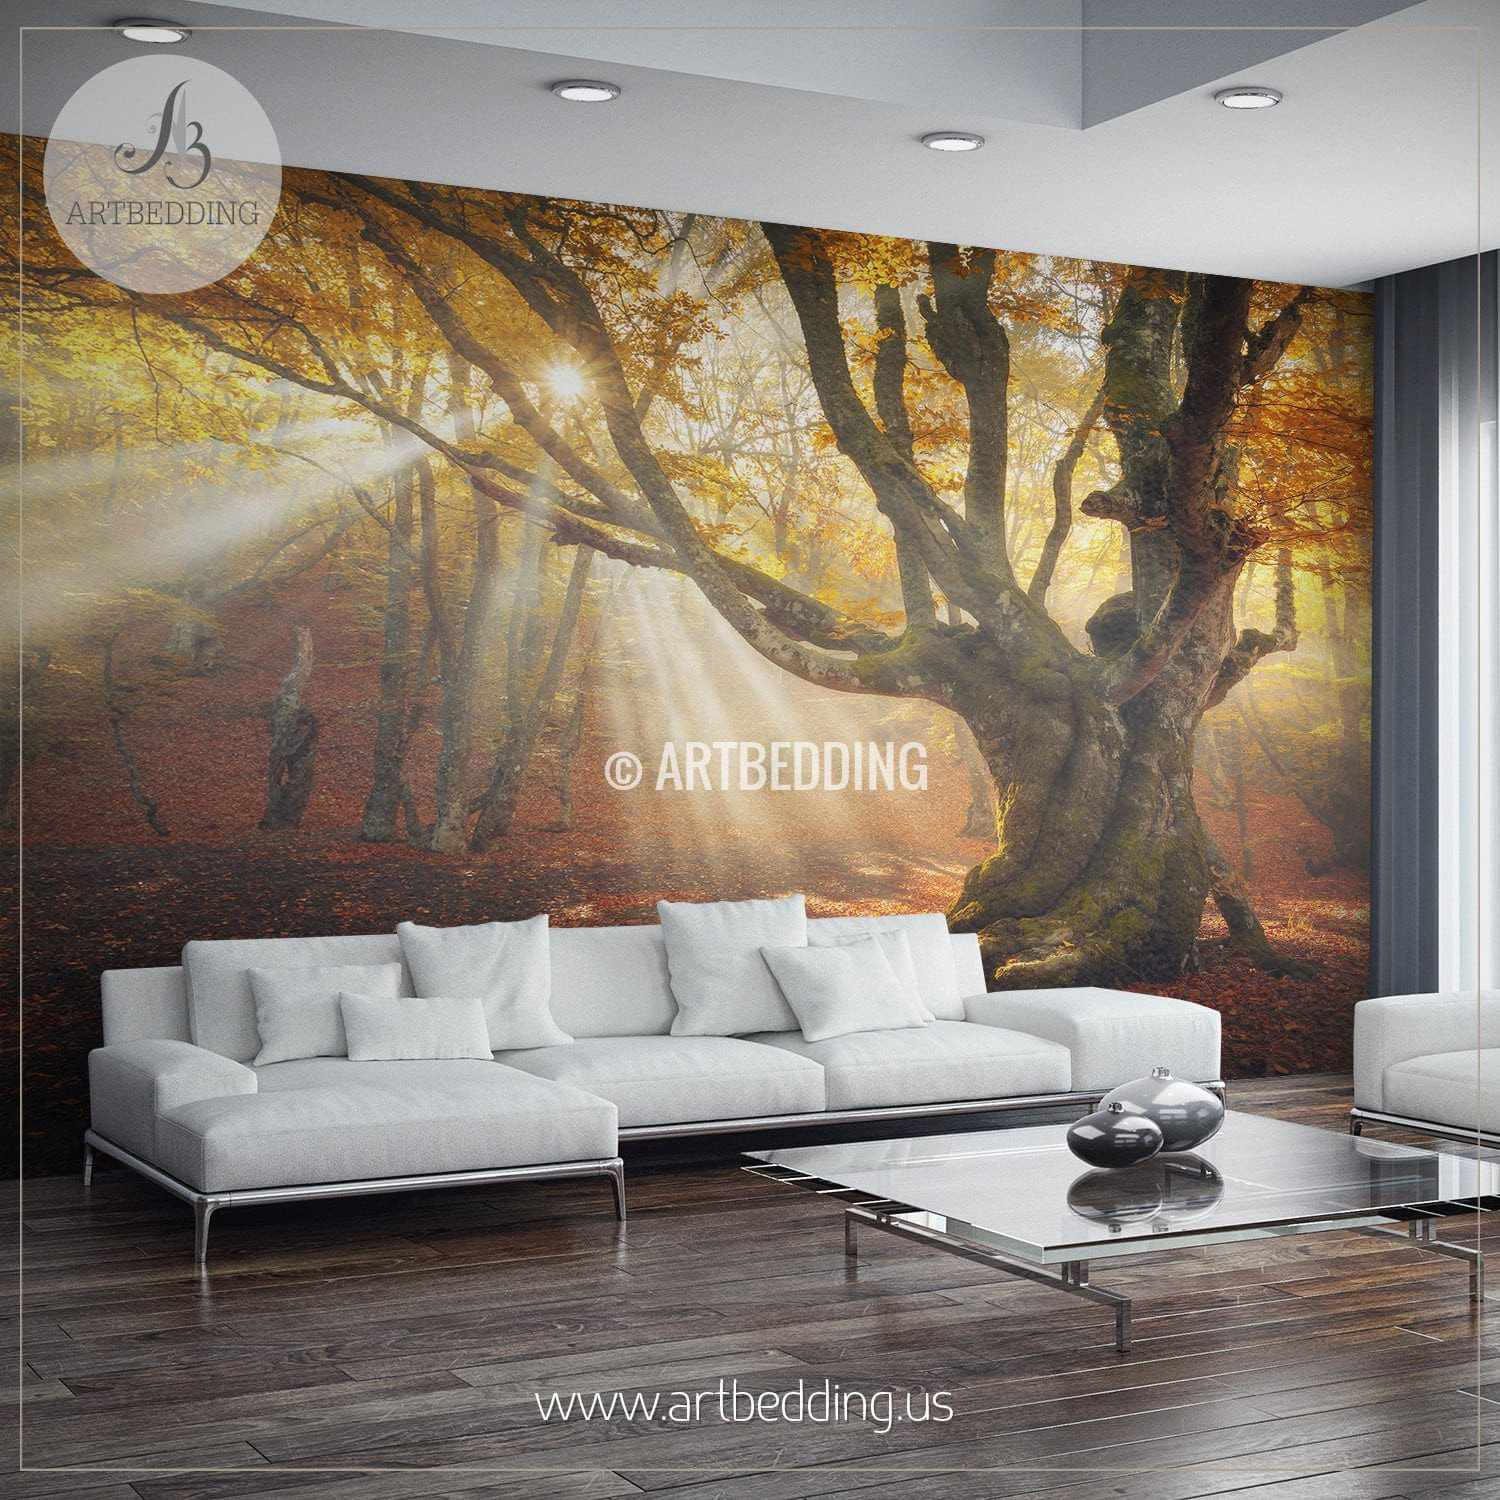 ... Autumn Forest Magical Old Tree Wall Mural, Photo Mural Self Adhesive  Peel U0026 Stick, ... Part 58